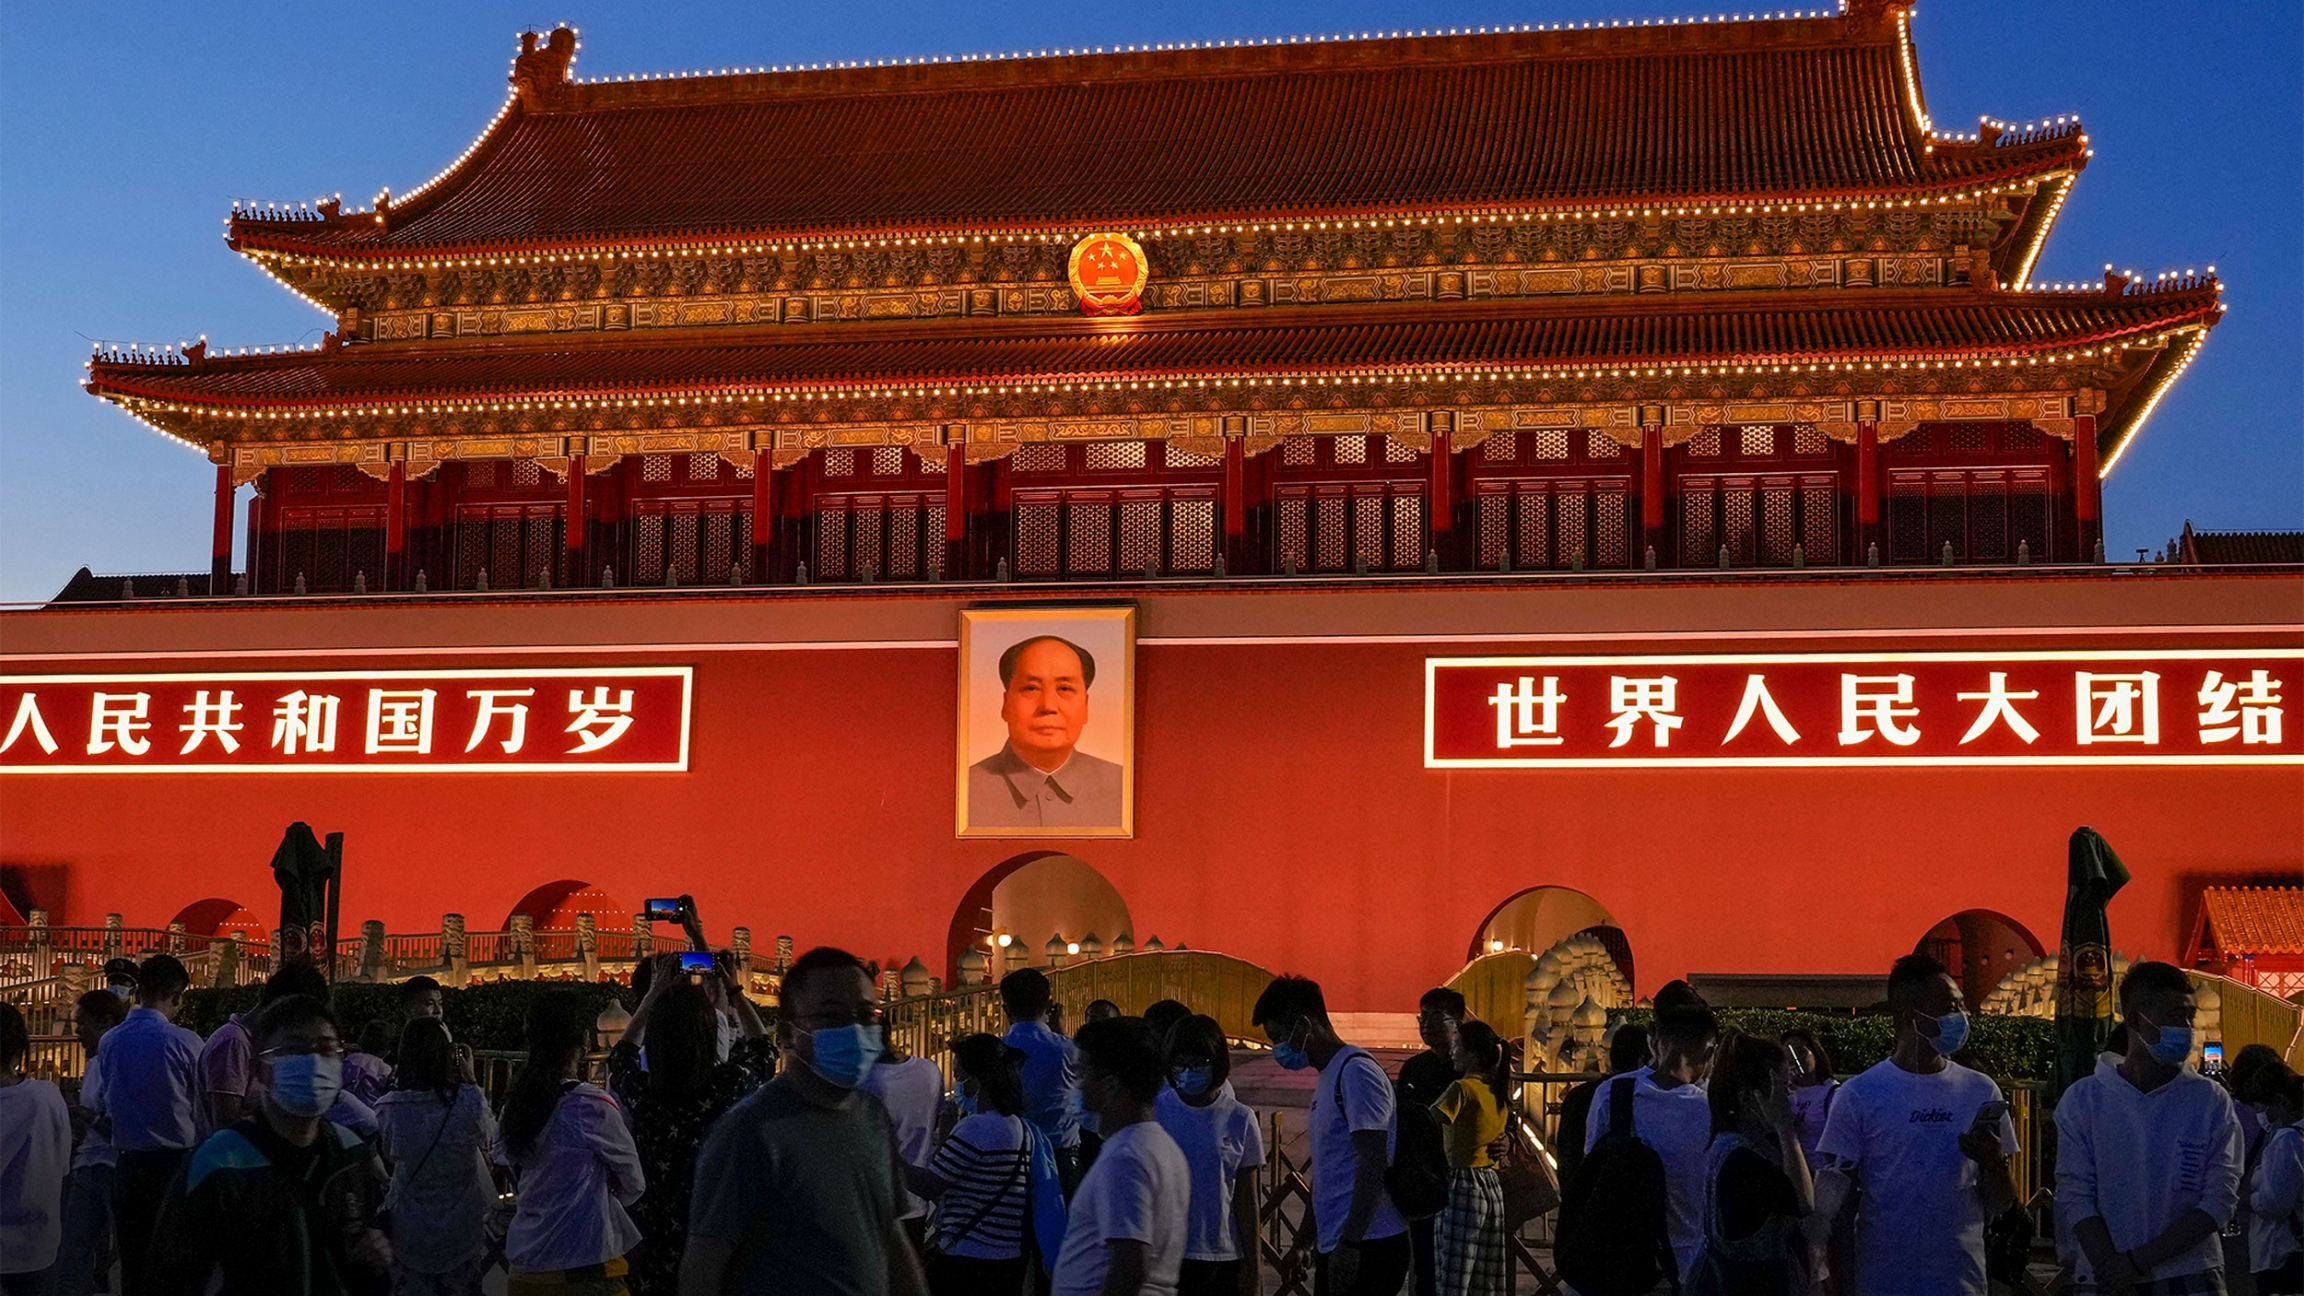 Red building in China with people in masks mingling in front of it